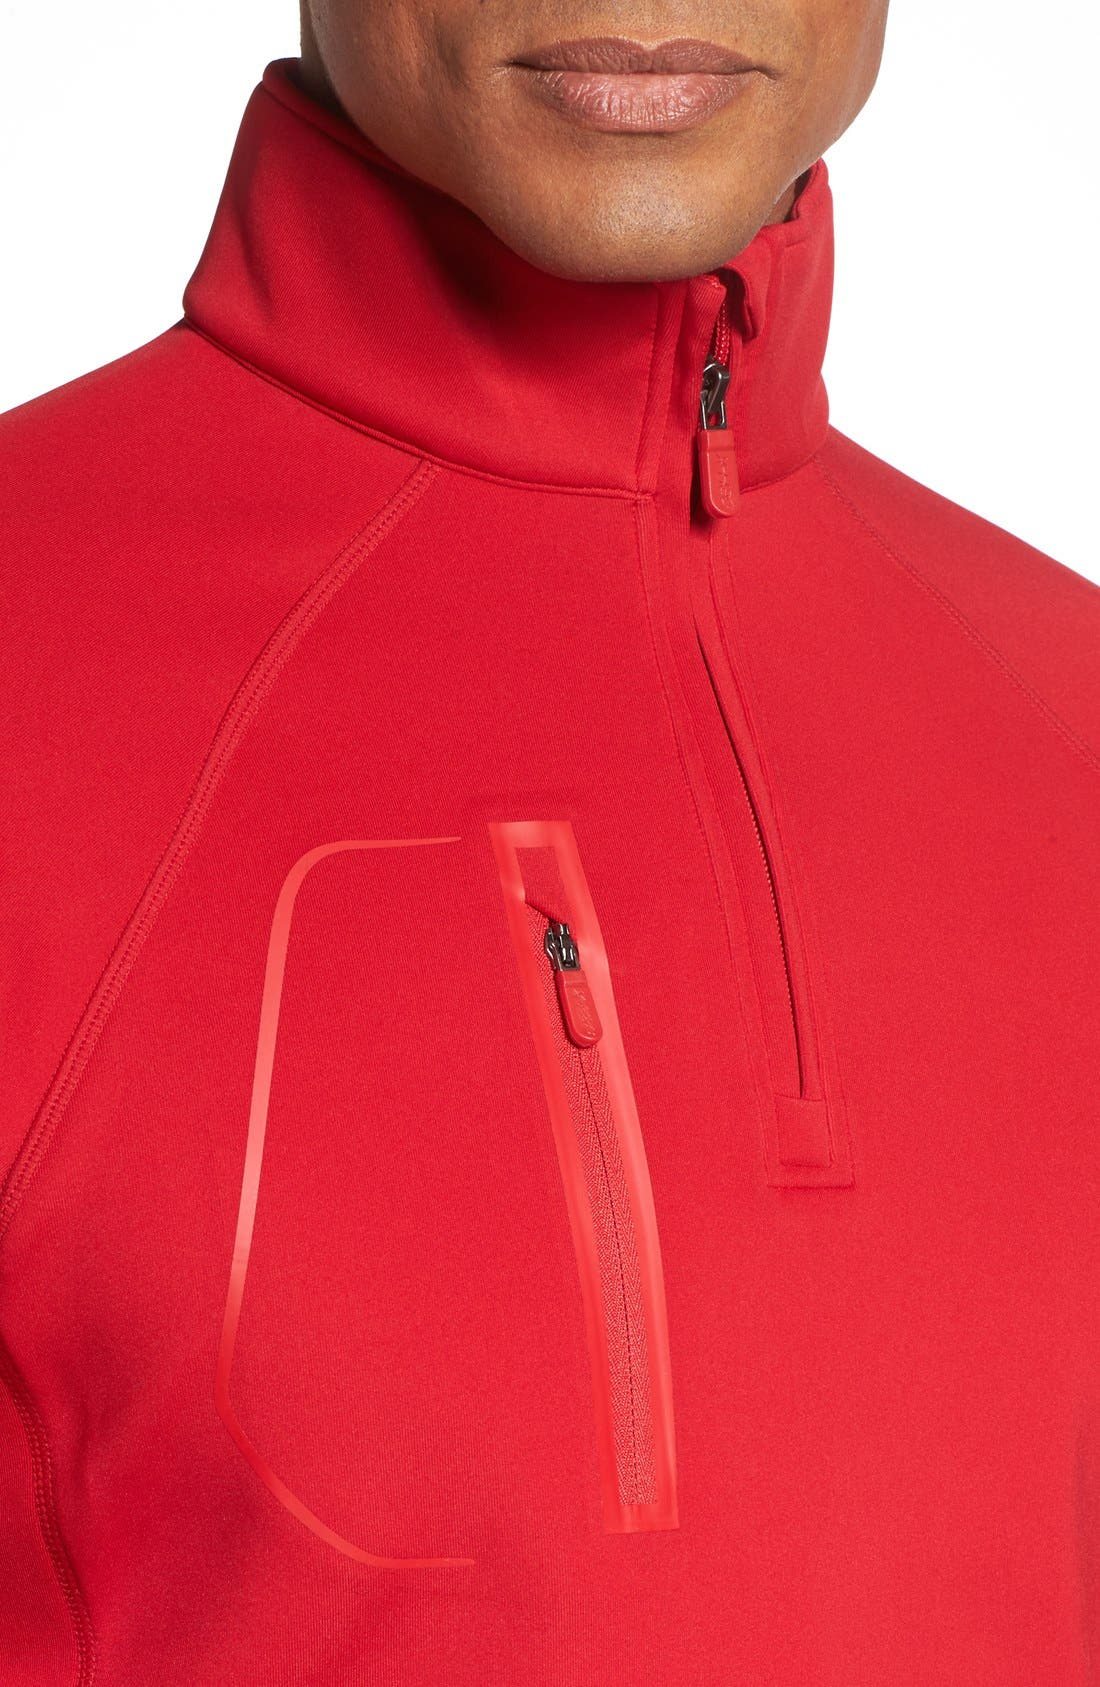 XH2O Crawford Stretch Quarter Zip Golf Pullover,                             Alternate thumbnail 50, color,